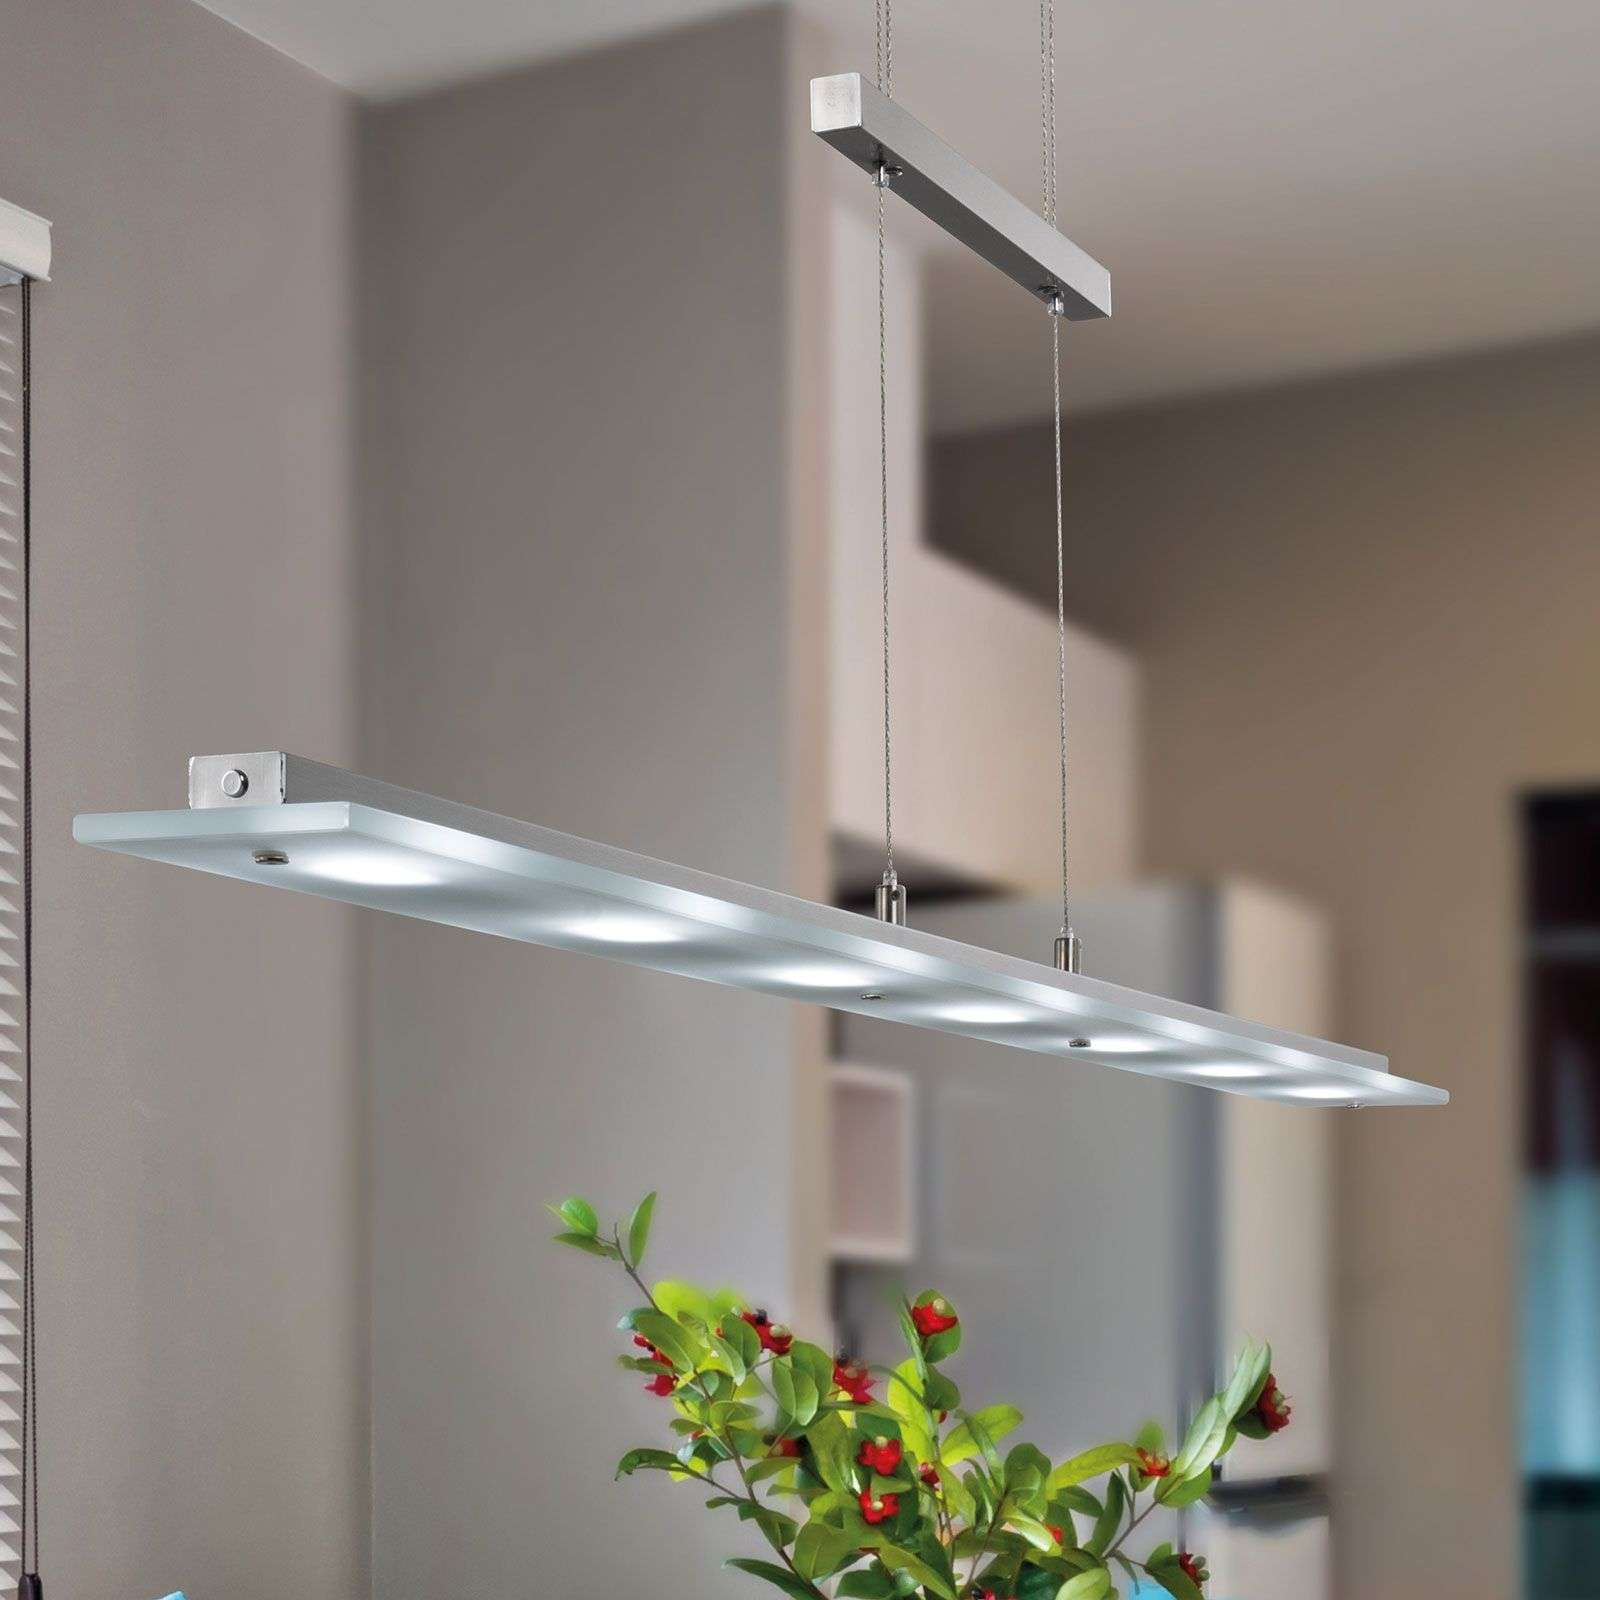 LED hanglamp Largo tunable wit met dimmer